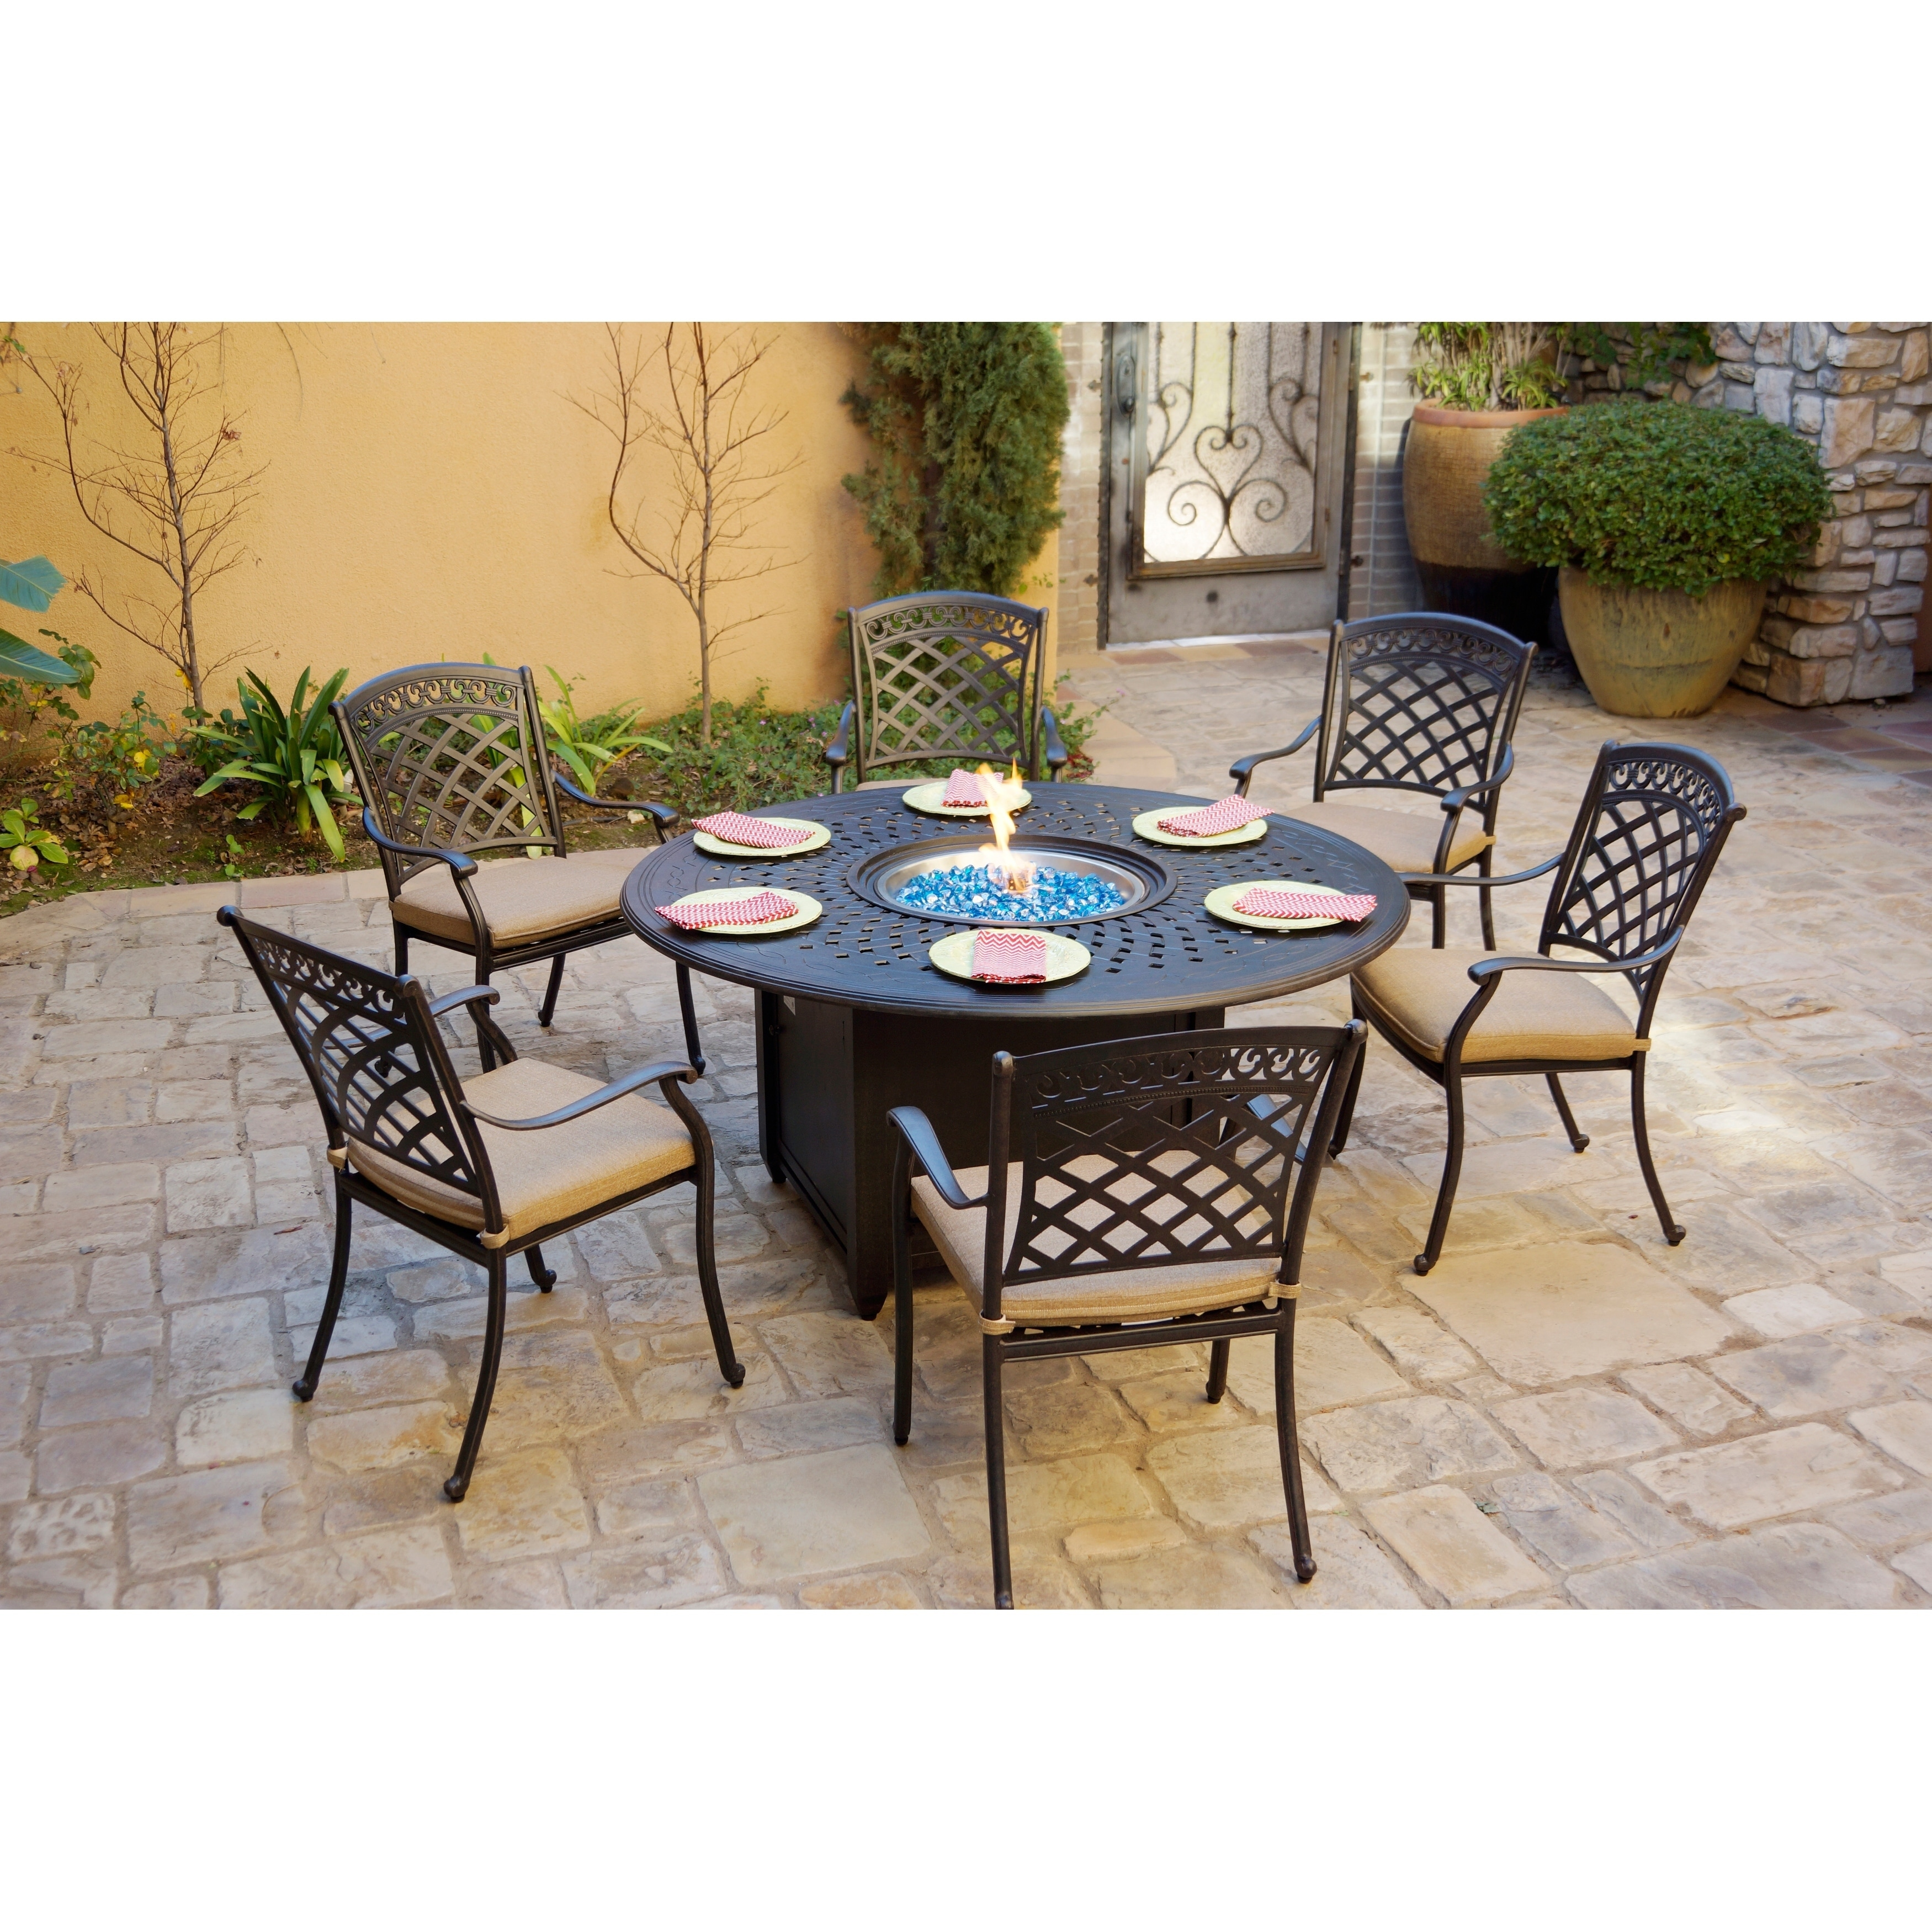 7-Piece Patio Fire Pit Dining Set 60 Inch Round Propane Table with Fireglass.  sc 1 st  Overstock.com & Shop 7-Piece Patio Fire Pit Dining Set 60 Inch Round Propane Table ...